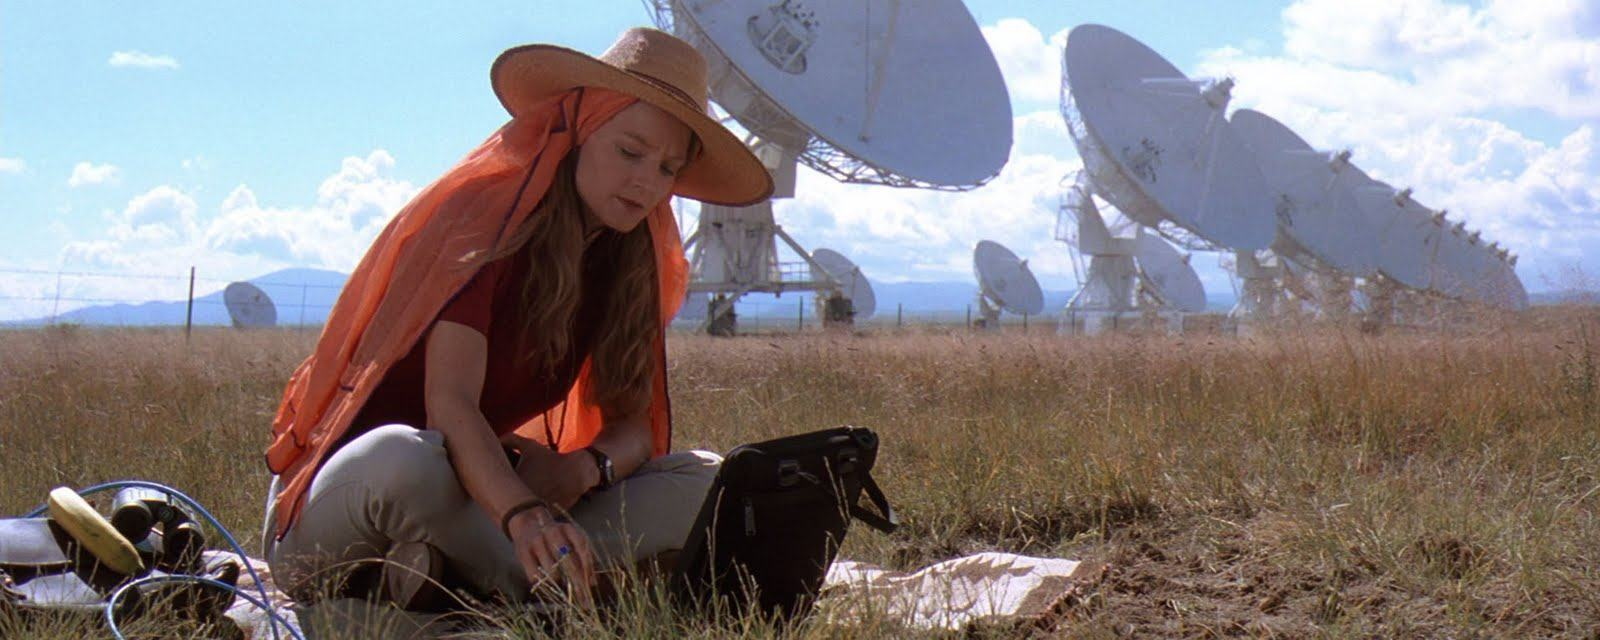 jodie-foster-contact-contato-7